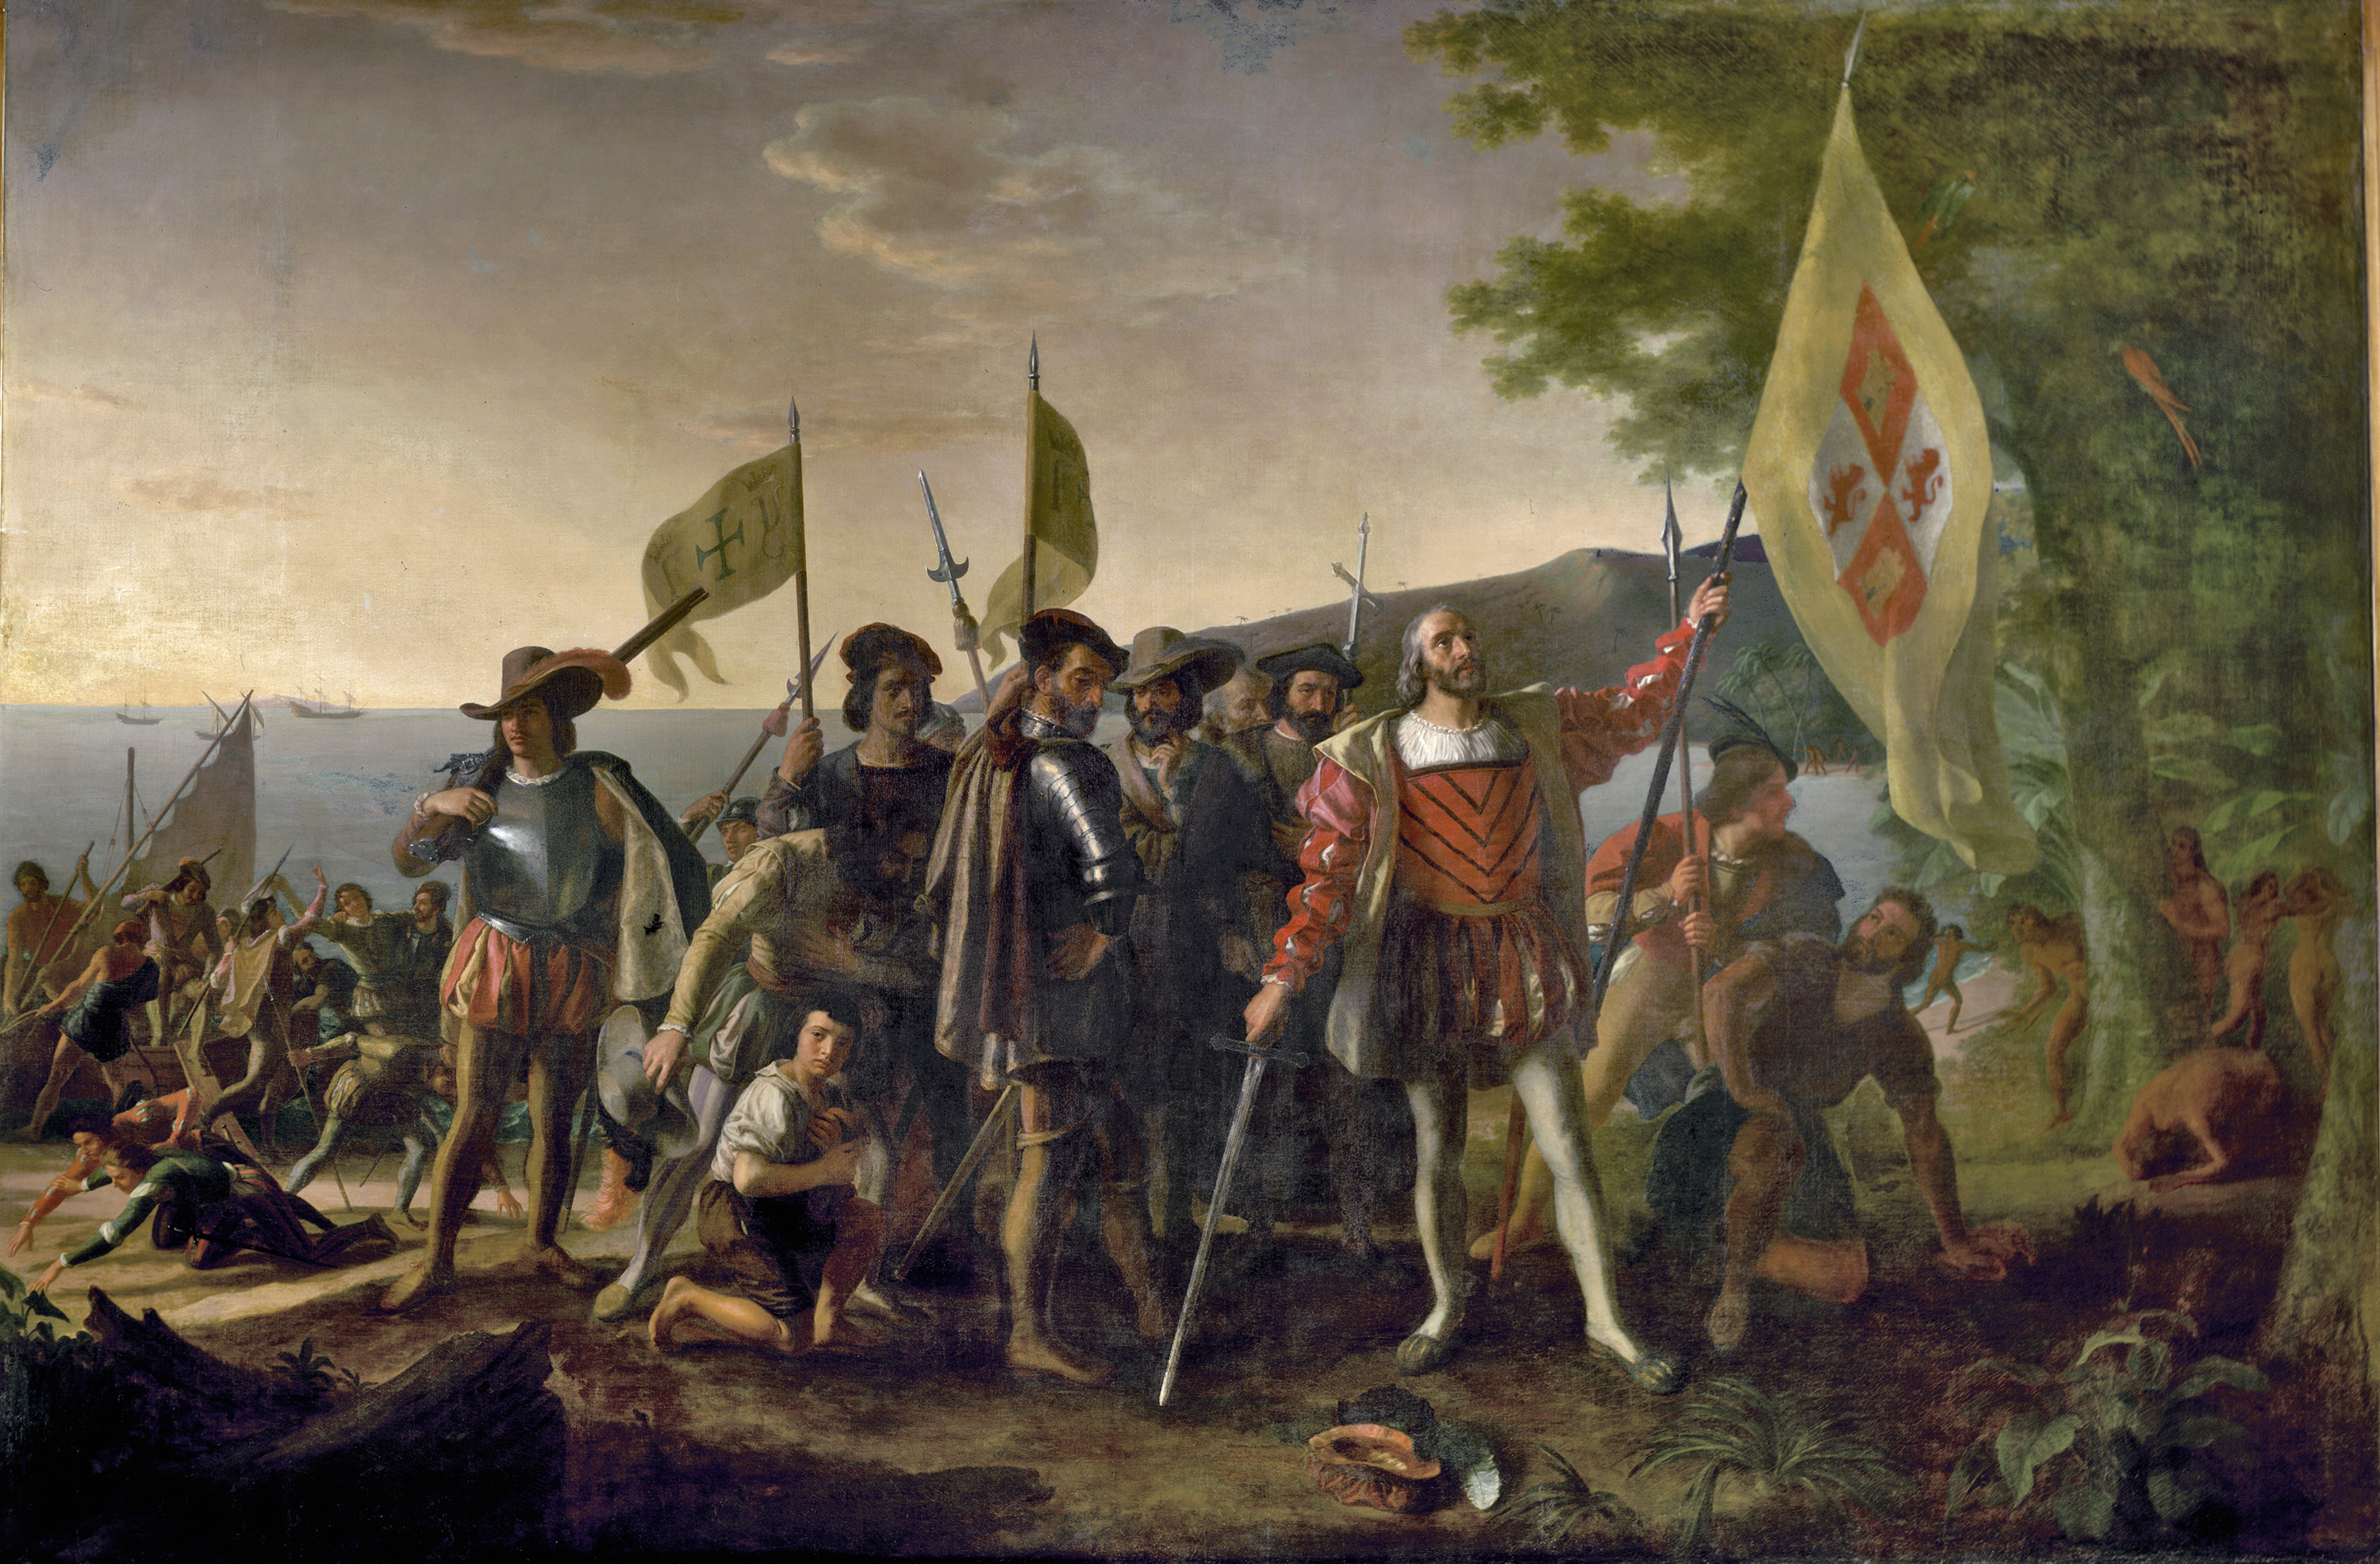 Christopher Columbus is depicted landing in the West Indies, on an island that the natives called Guanahani and he named San Salvador, on October 12, 1492. He raises the royal banner, claiming the land for his Spanish patrons, and stands bareheaded, with his hat at his feet, in honor of the sacredness of the event. The captains of the Niña and Pinta follow, carrying the banner of Ferdinand and Isabella. The crew displays a range of emotions, some searching for gold in the sand. Natives watch from behind a tree. Artist John Vanderlyn (1775-1852) had studied with Gilbert Stuart and was the first American painter to be trained in Paris, where he worked on this canvas for ten years with the help of assistants. Oil on canvas, 1847.